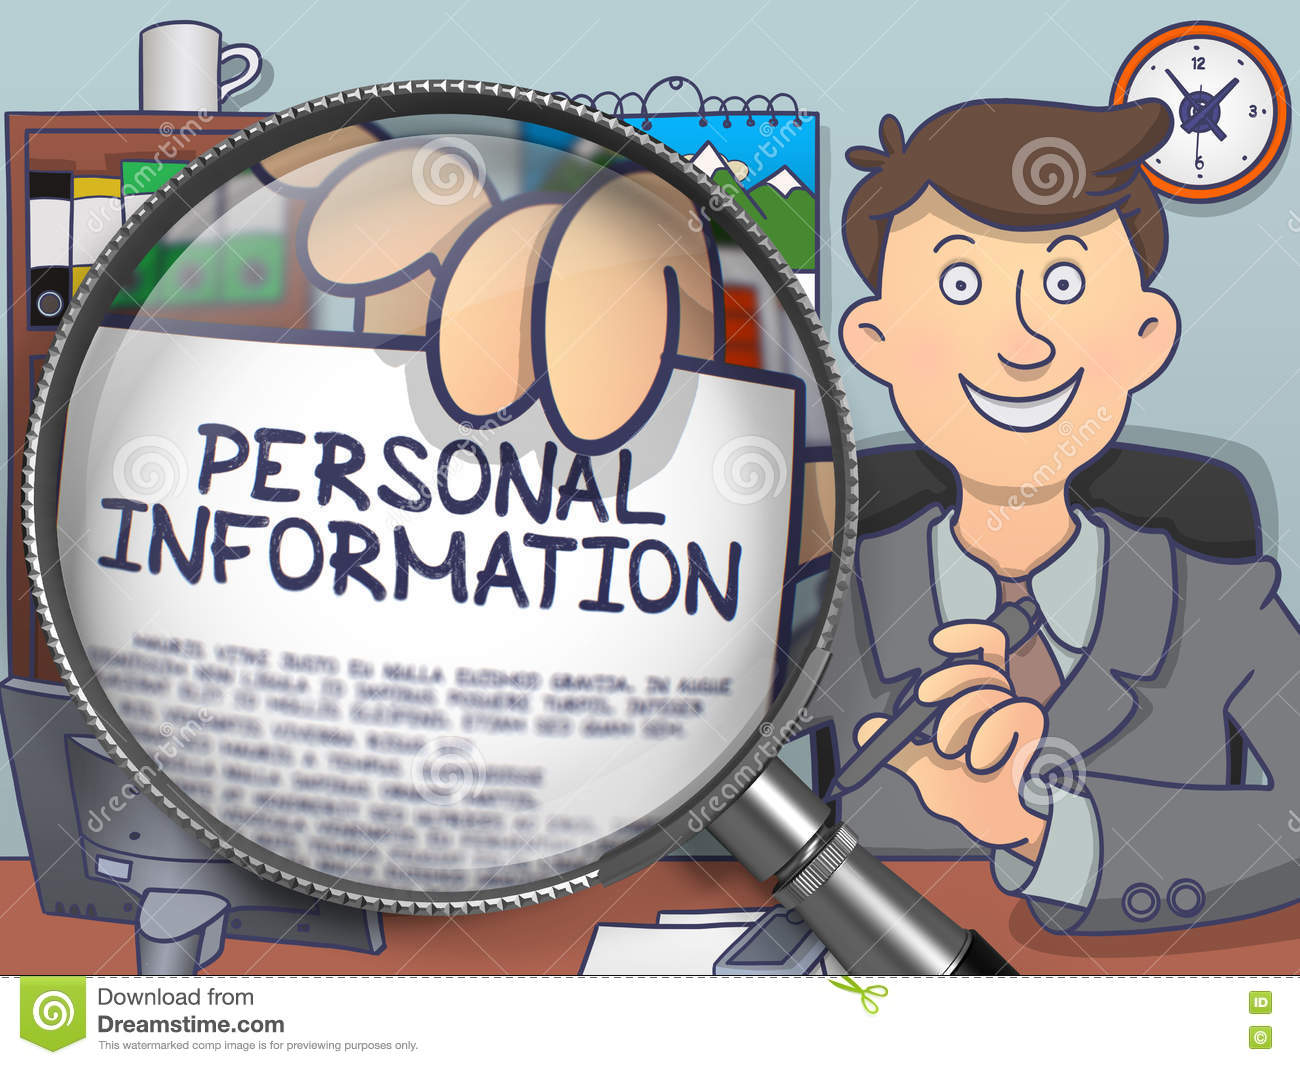 personal information clipart magnifier doodle through illustration text paper illustrations clip holds drawings preview business